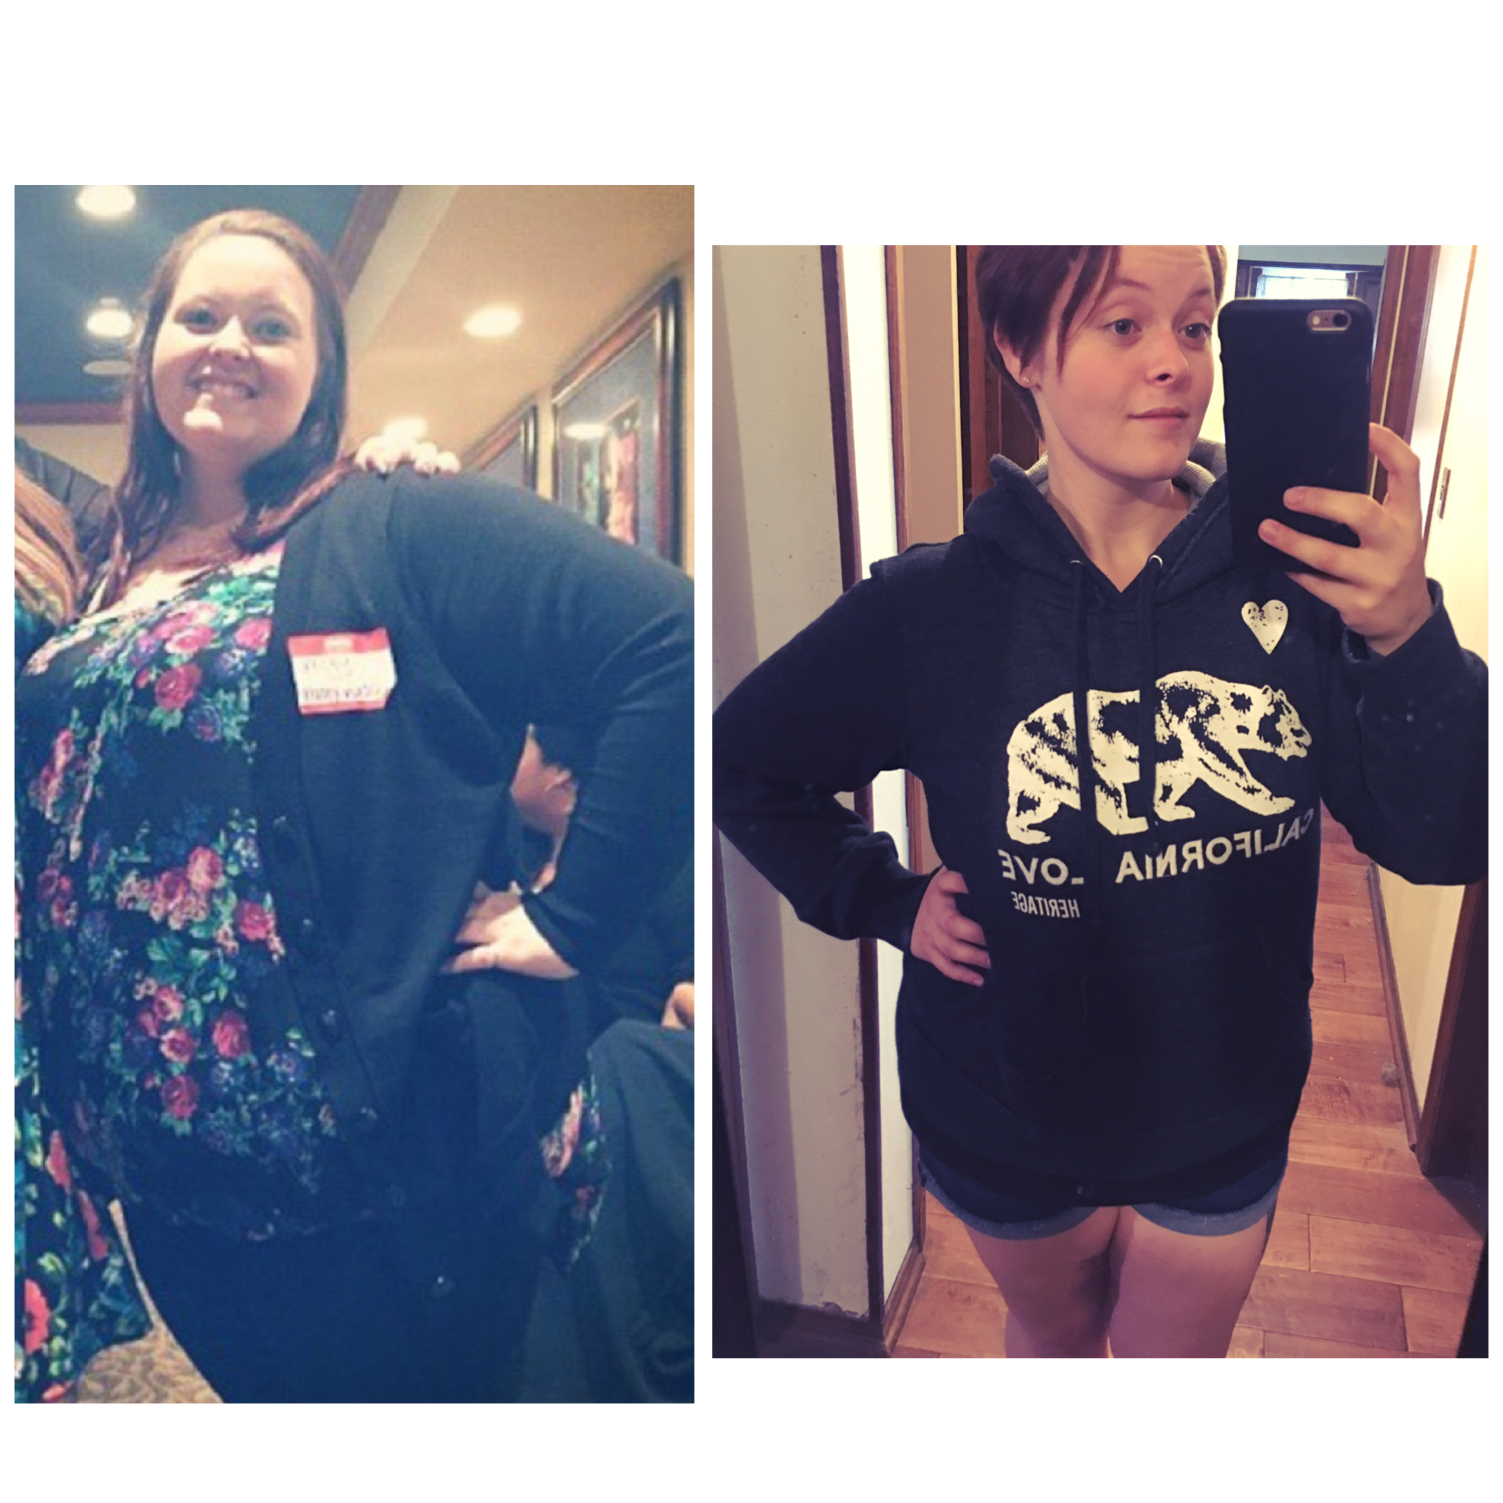 Kelsey lost 129 pounds! See my before and after weight loss pictures, and read amazing weight loss success stories from real women and their best weight loss diet plans and programs. Motivation to lose weight with walking and inspiration from before and after weightloss pics and photos.